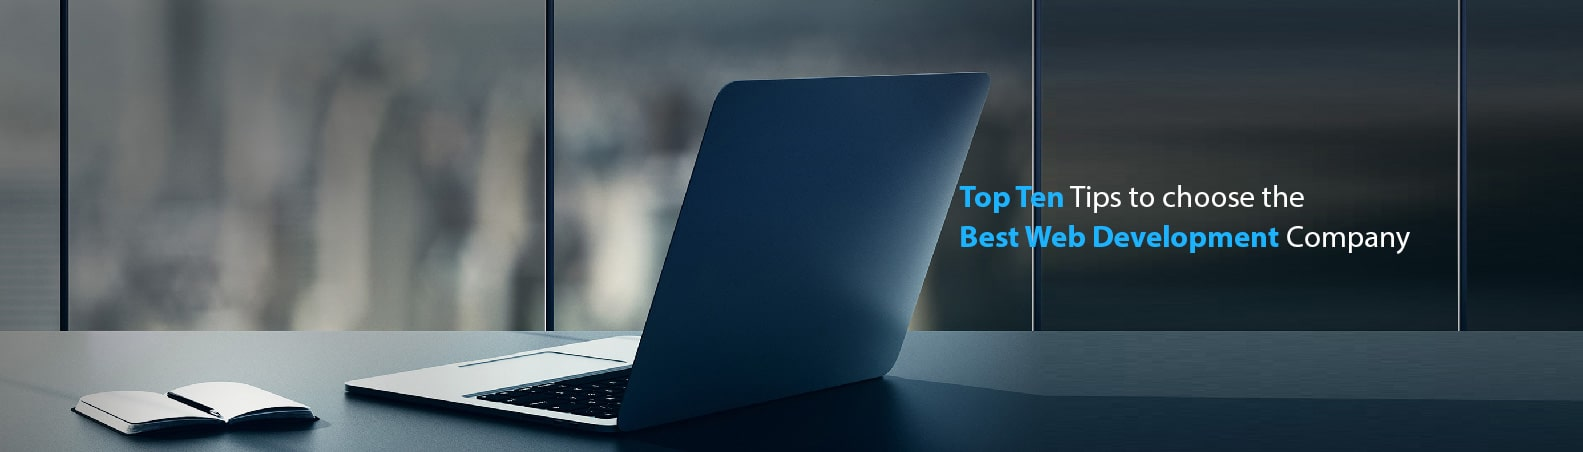 Top Ten Tips to Choose the Best Web Development Company